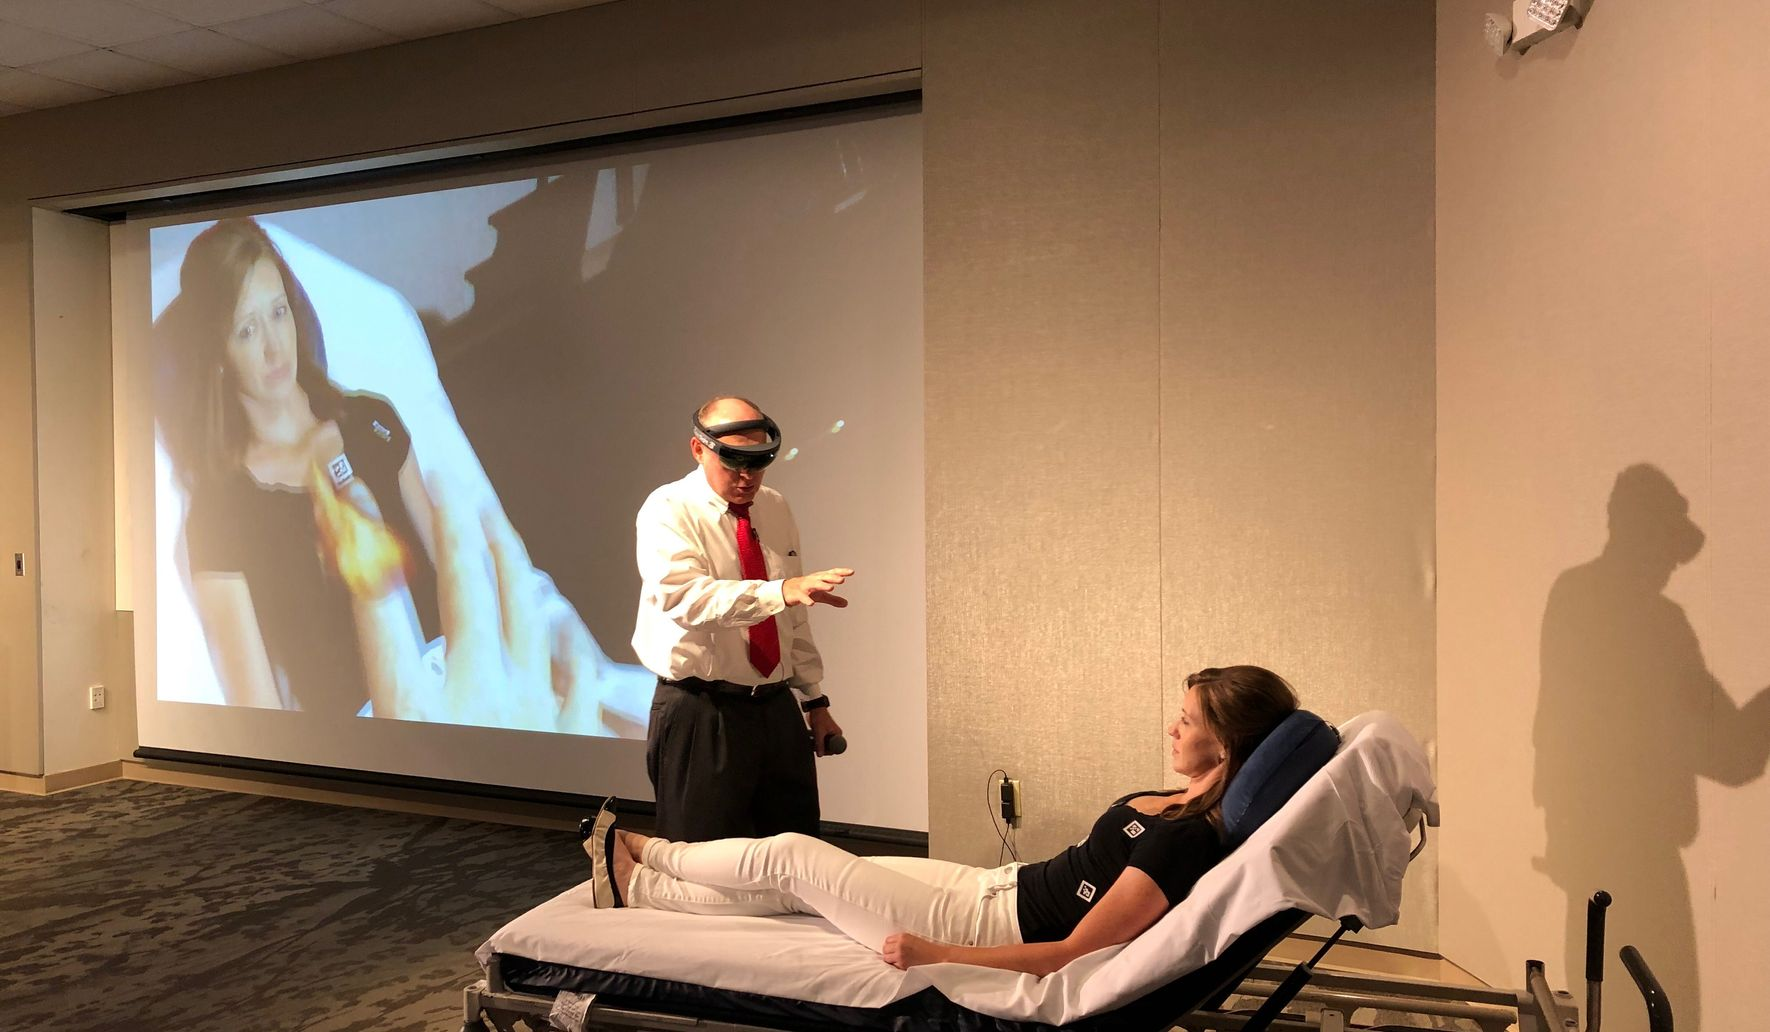 GW Hospital doctors among first to use virtual, augmented reality tech for surgeries